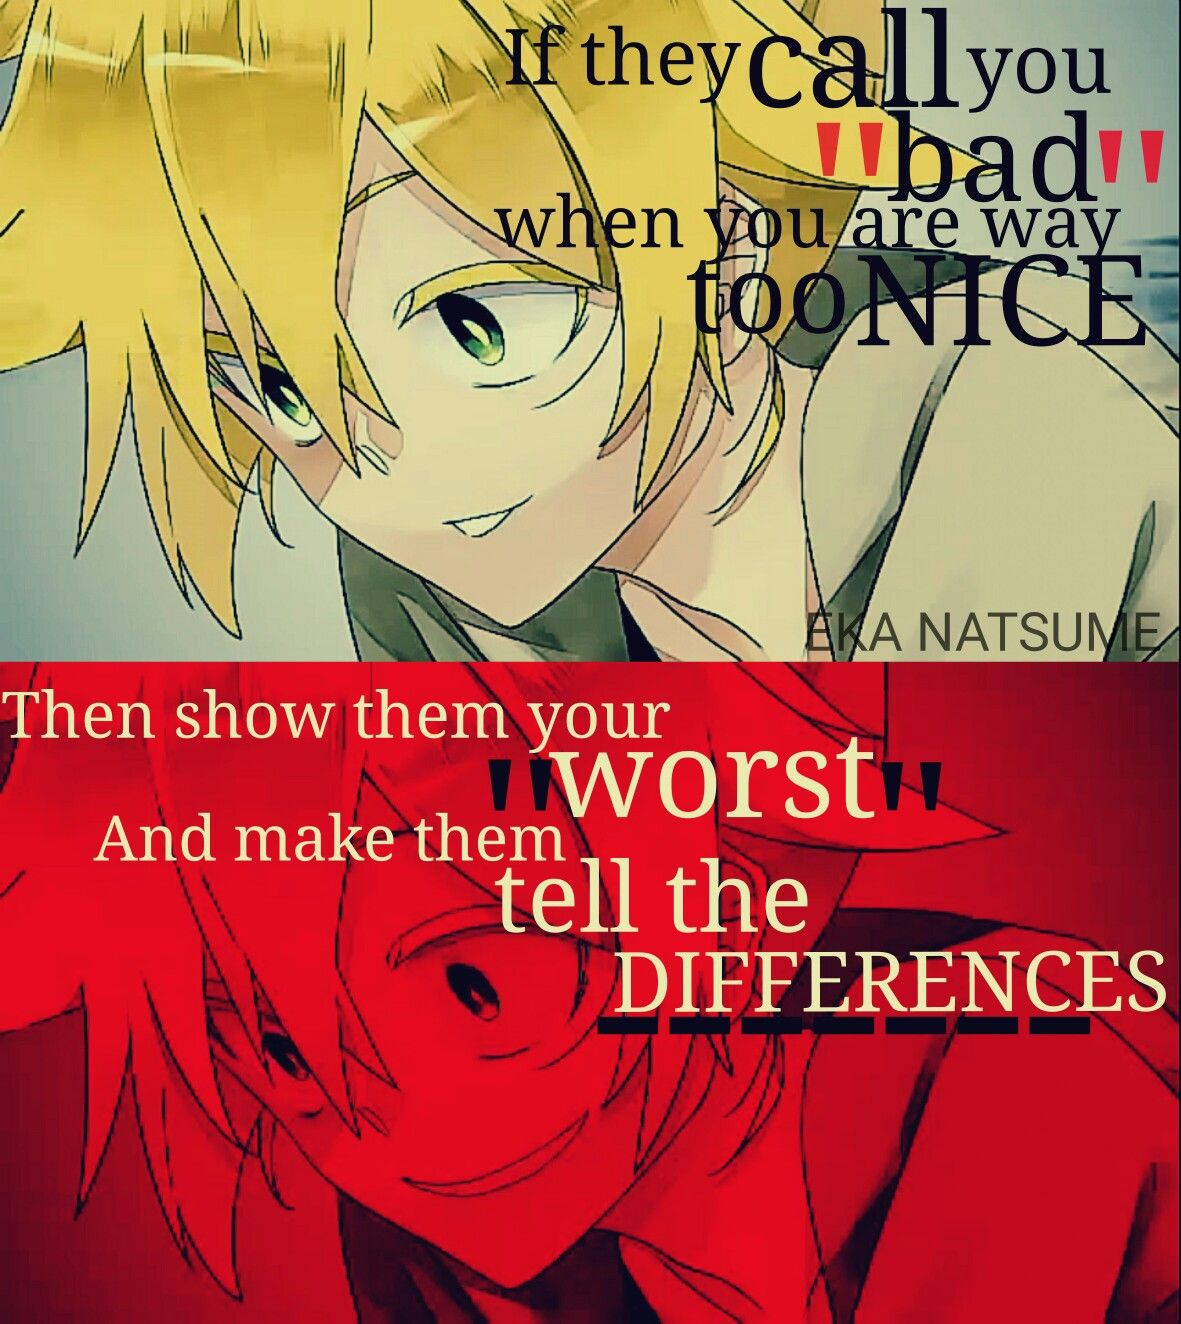 Photo Editor With Love Quotes Song True Love Restraint Editor Eka Natsume  Anime Quote